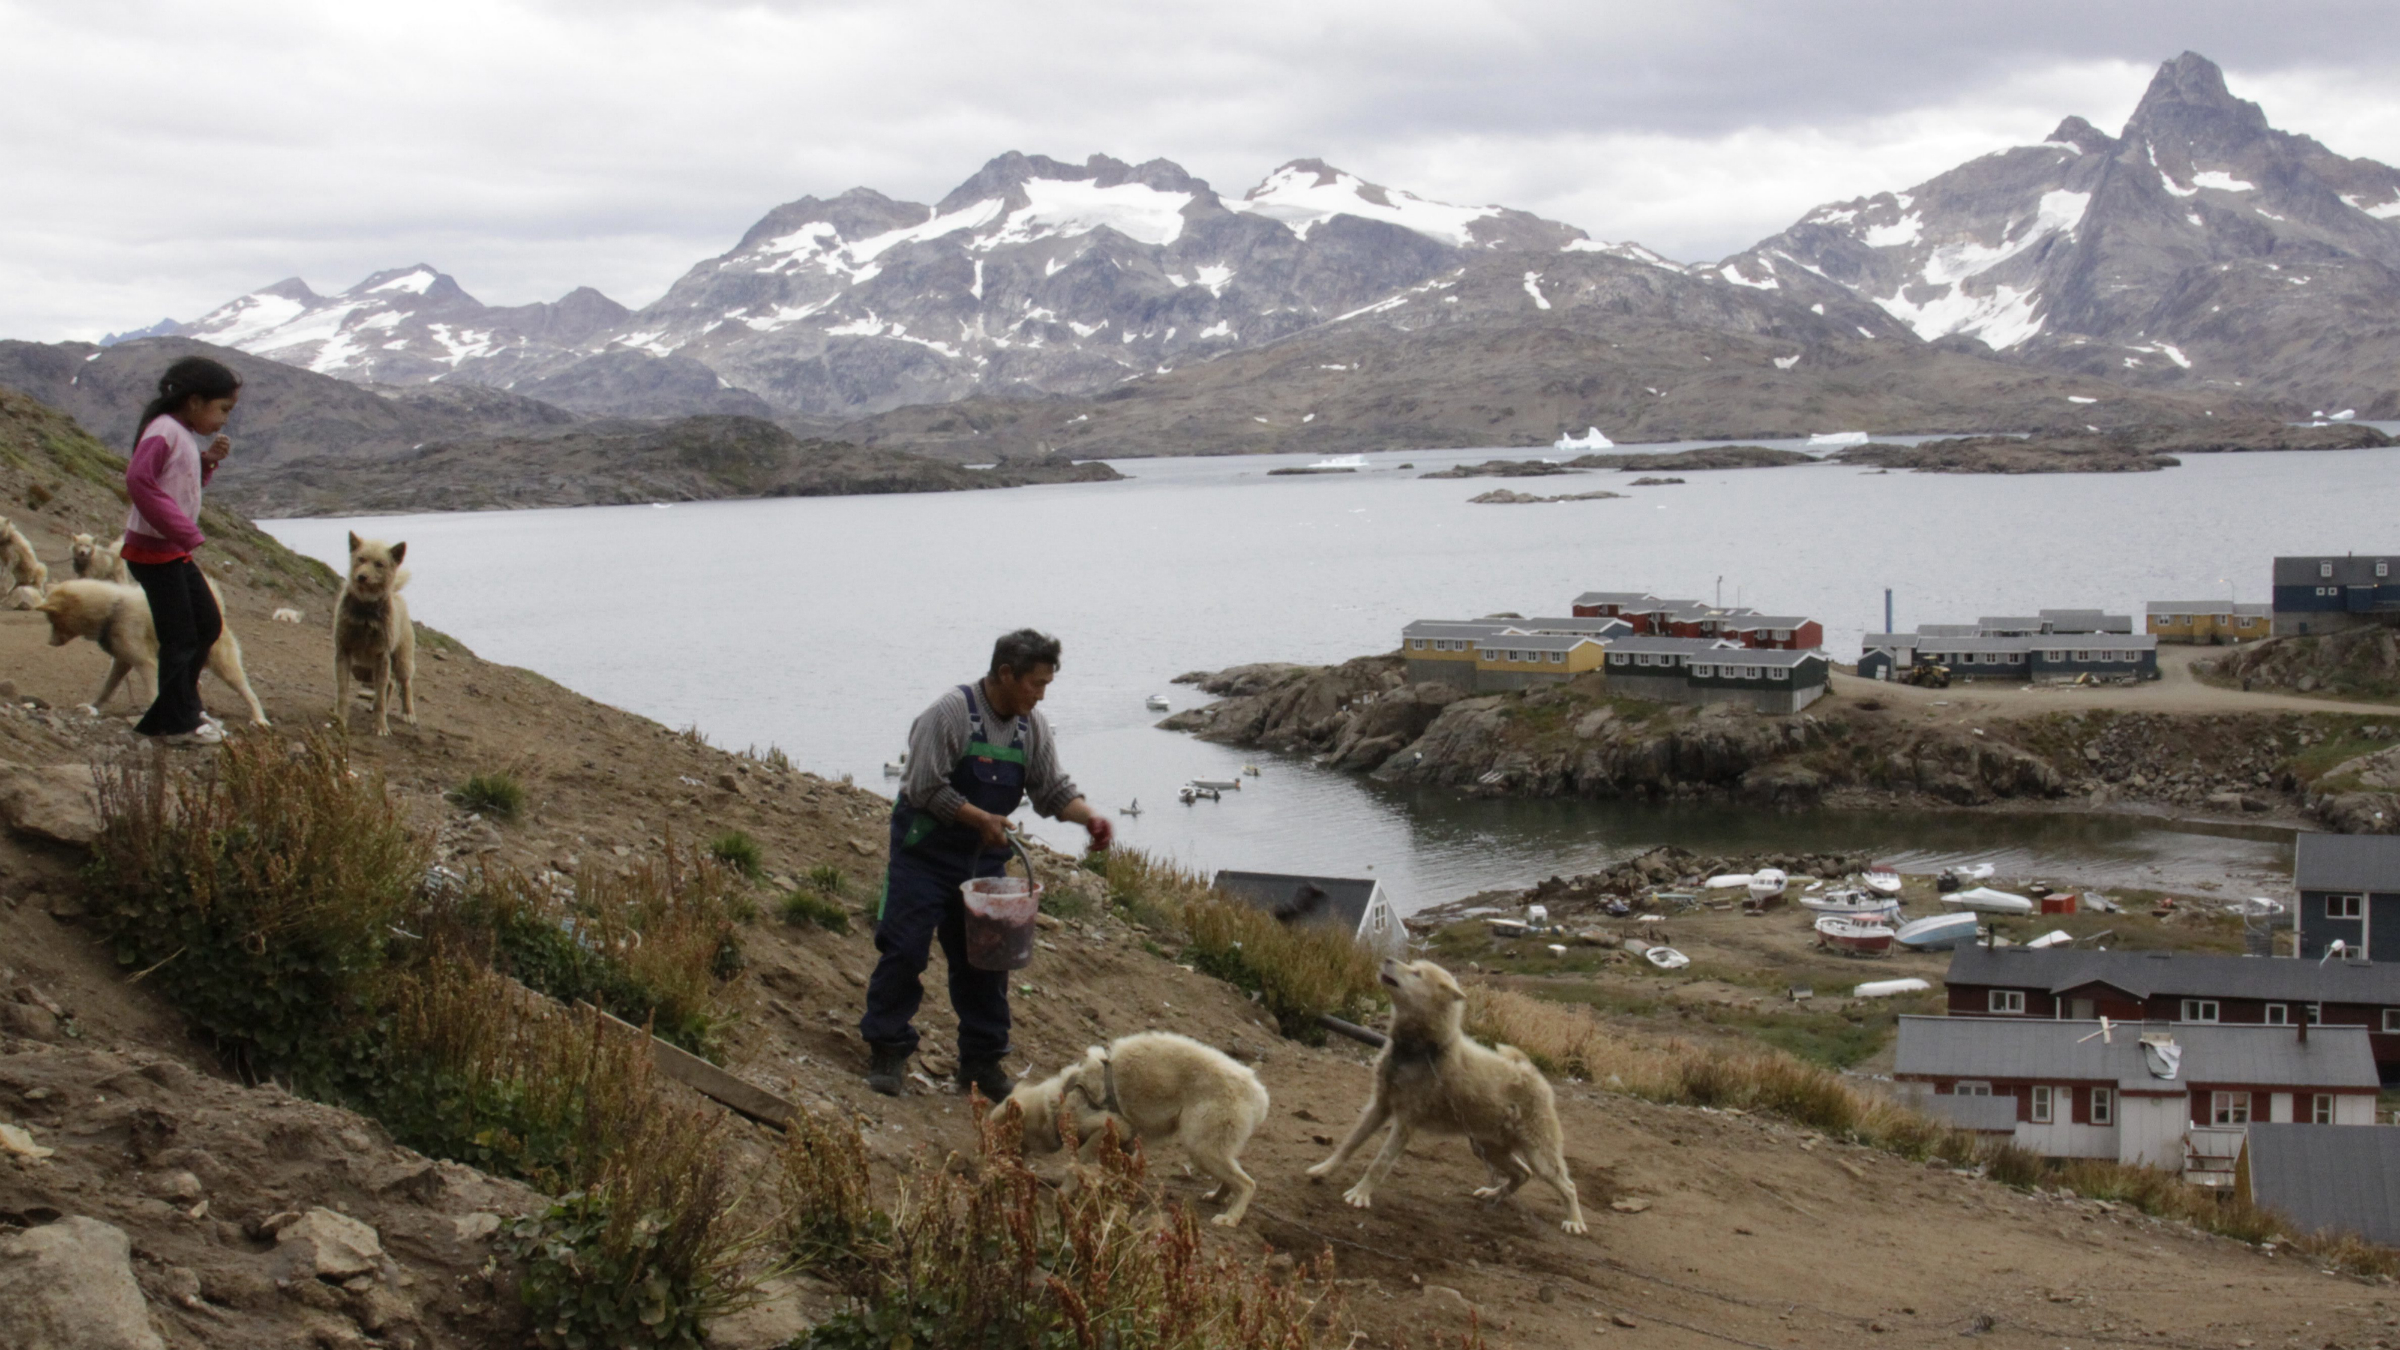 Gert Ignatiussen throws a chunk of seal meat to one of his sled dogs in Tasiilaq, an Inuit town on the southeast coast of Greenland, in this photograph taken on Aug. 25, 2009. Ignatiussen was the winner of Greenland's annual amateur mineral hunt, a competition that the local government hopes will spur Greenlanders to take interest in the hidden resources being uncovered by the Arctic thaw.